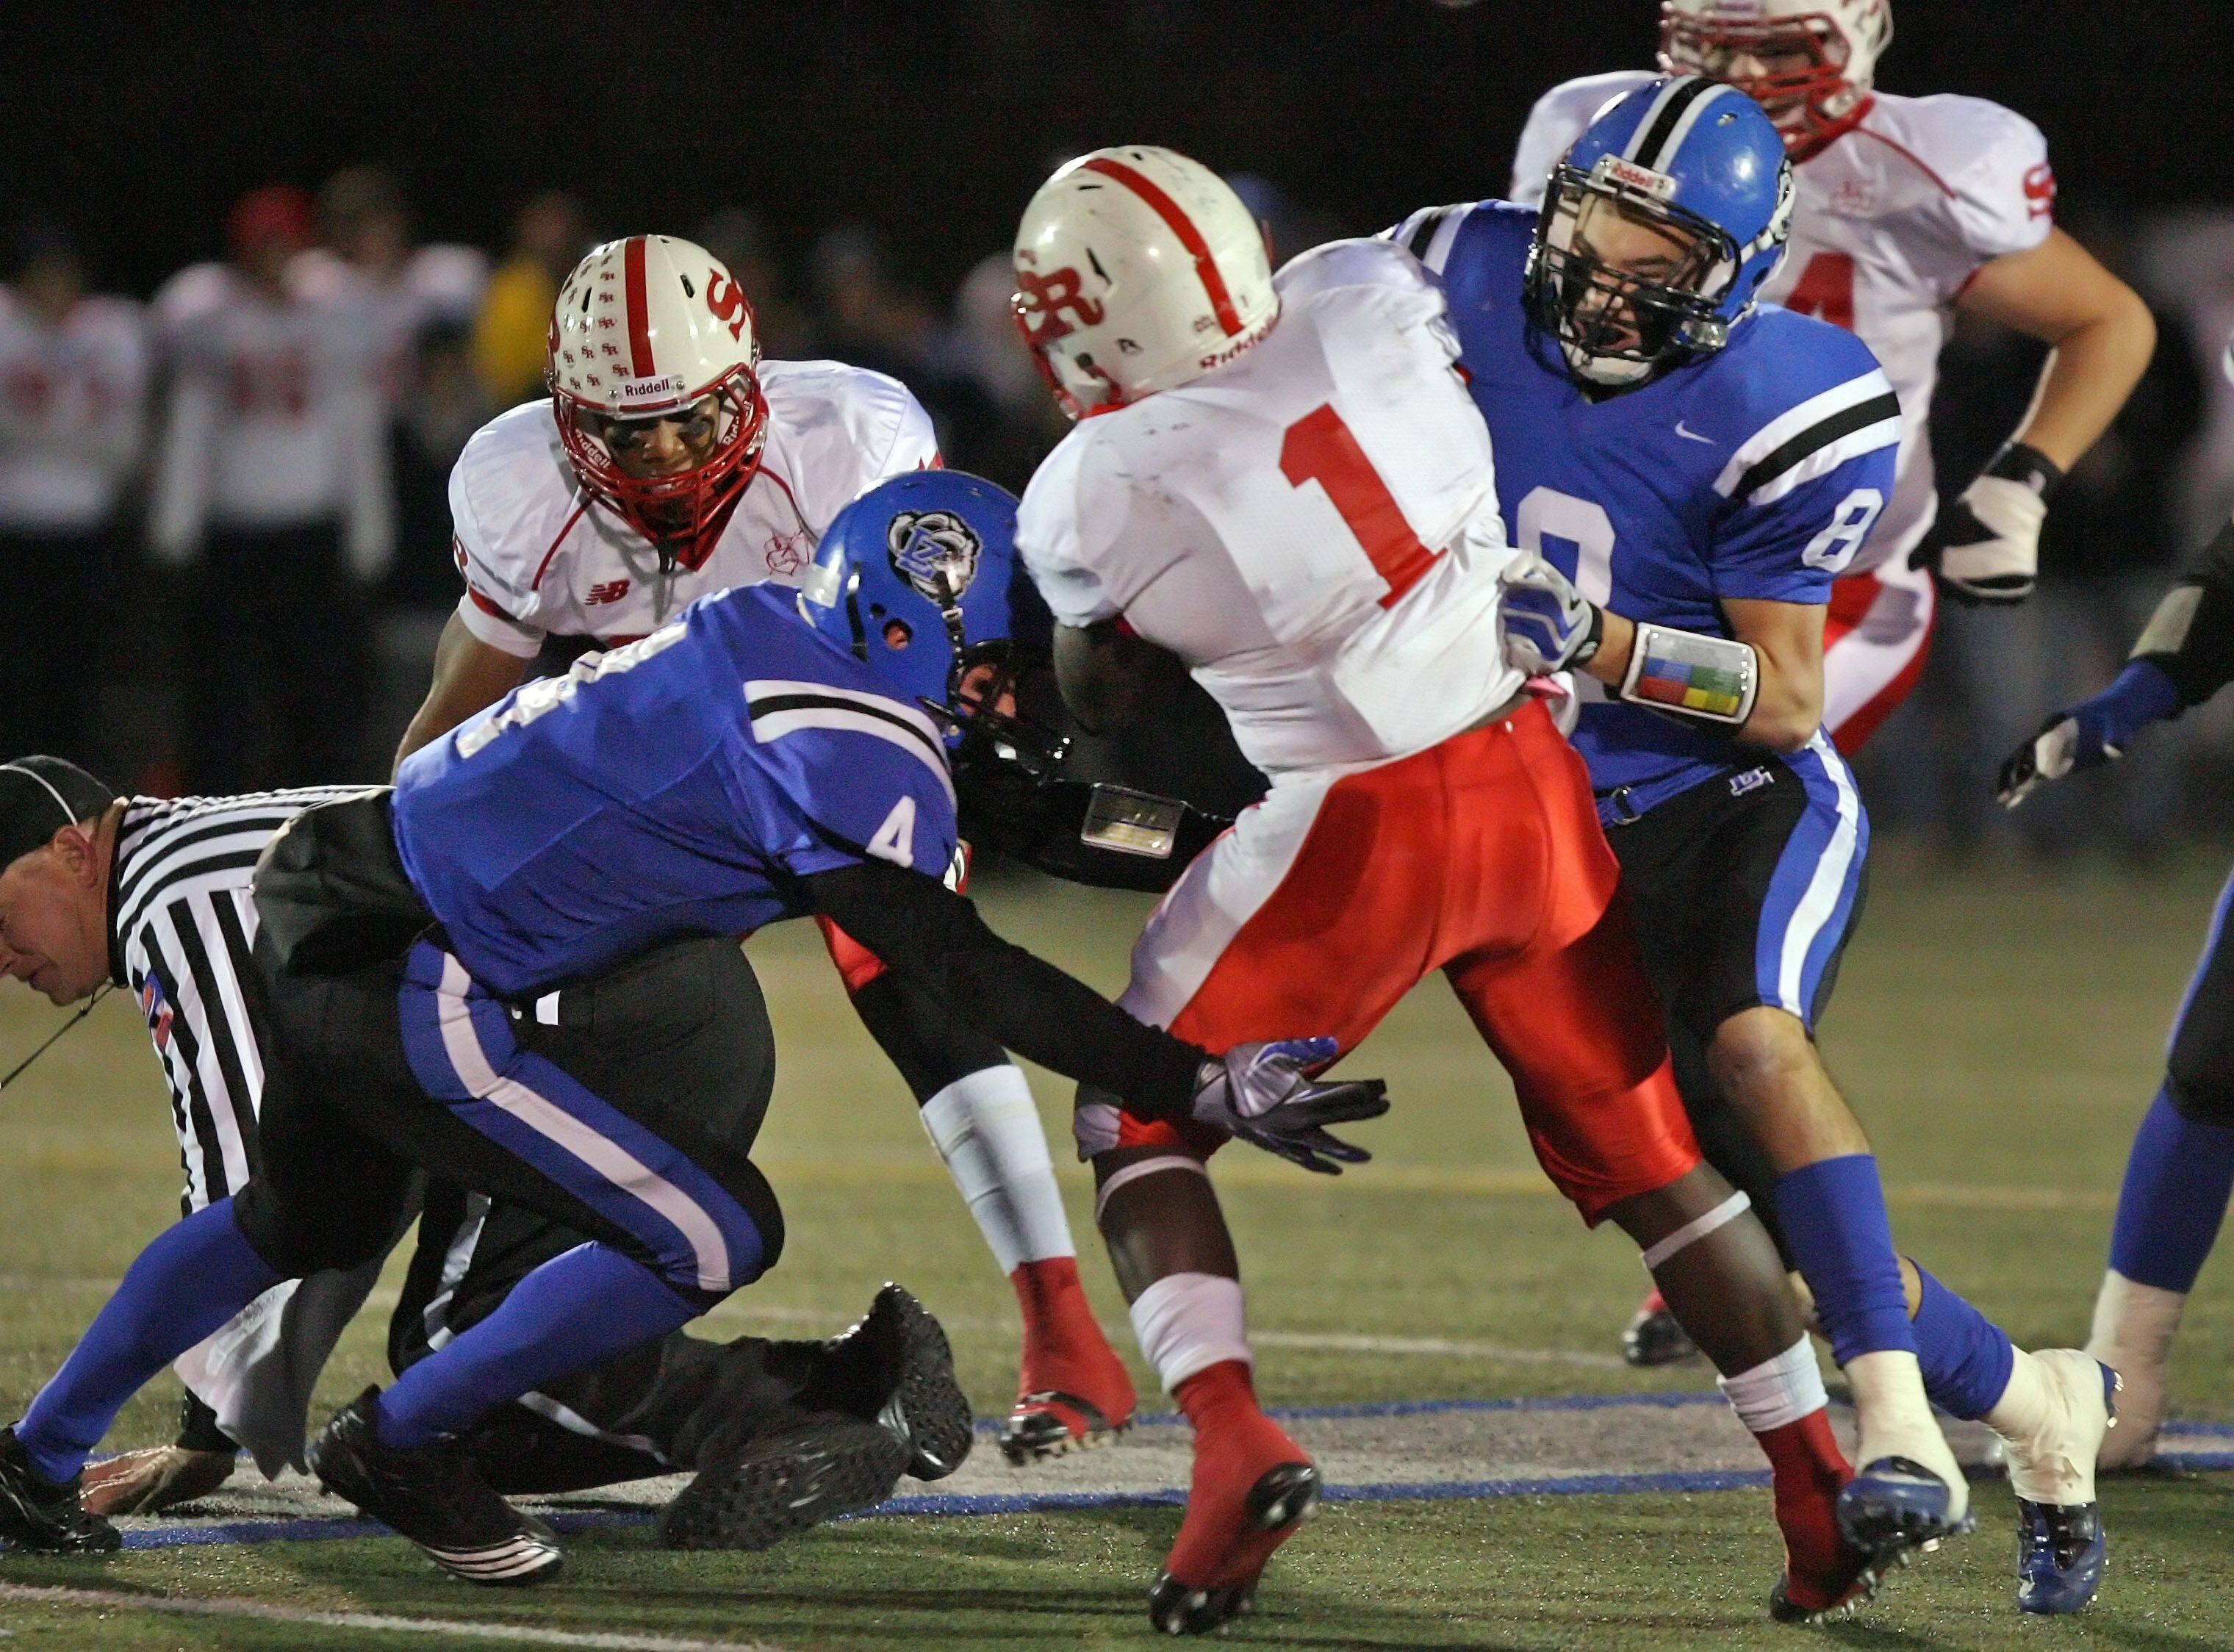 Lake Zurich's Zach Till and Chris Rantis tackle St. Rita's Jahwon Akul during the IHSA Class 7A football semi final game Saturday night at Lake Zurich High School.